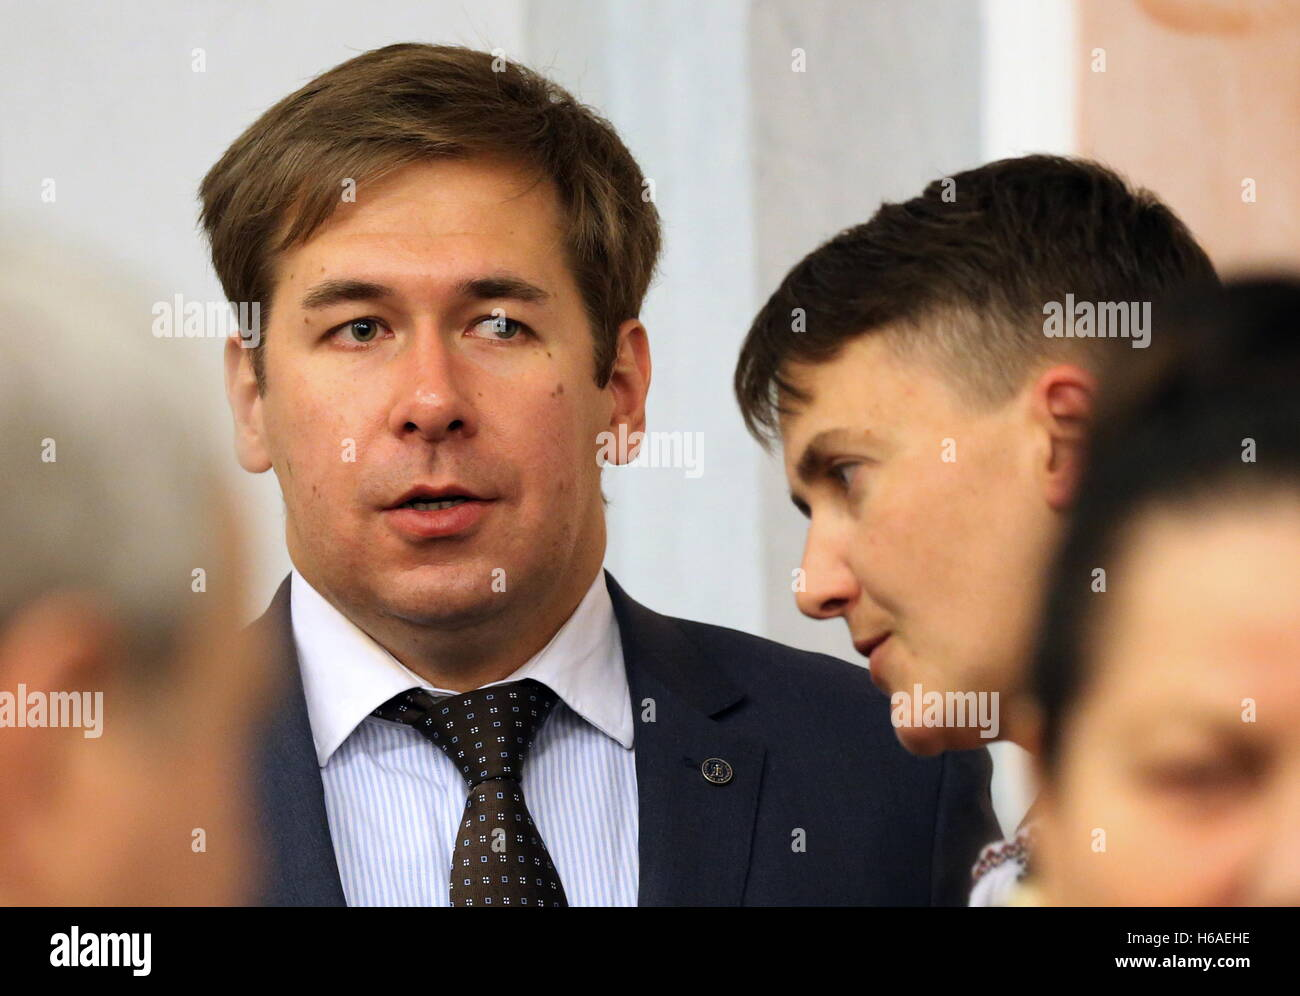 Moscow, Russia. 26th Oct, 2016. Ukraine's Verkhovna Rada member Nadezhda Savchenko (R back) and her lawyer Ilya - Stock Image